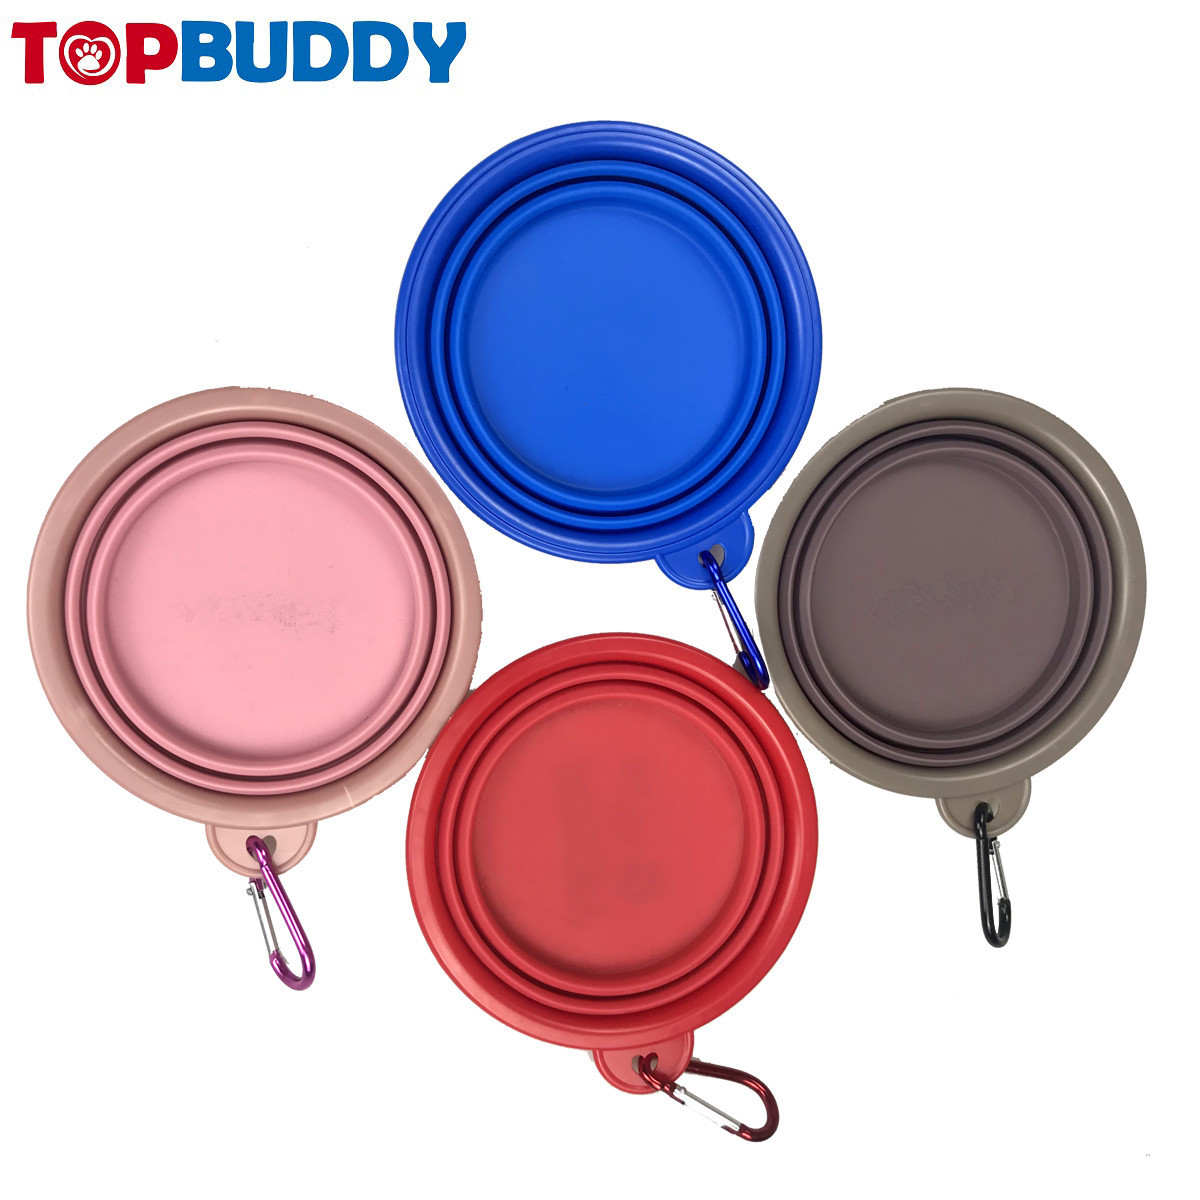 Pet Supplies Silica Gel TPE Foldable Pet Bowl Portable Dog Bowl Environmentally Friendly Non-toxic Carabiner Portable Zhe Die Wa